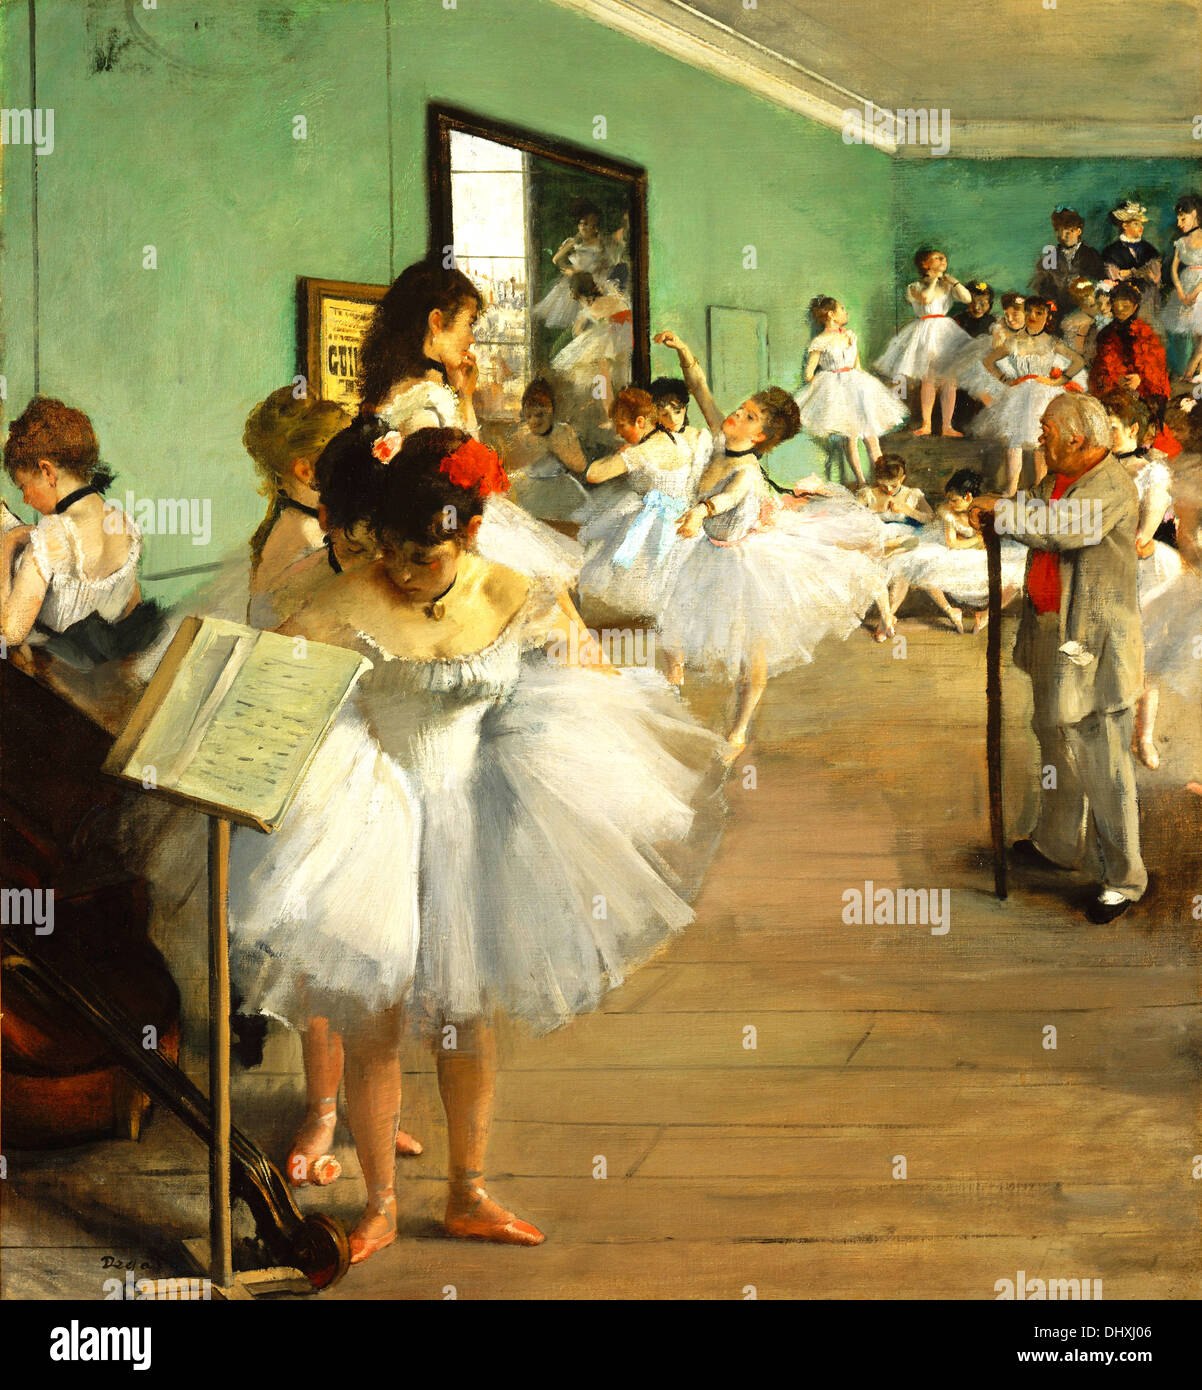 The Dance Class - by Edgar Degas, 1874 - Stock Image